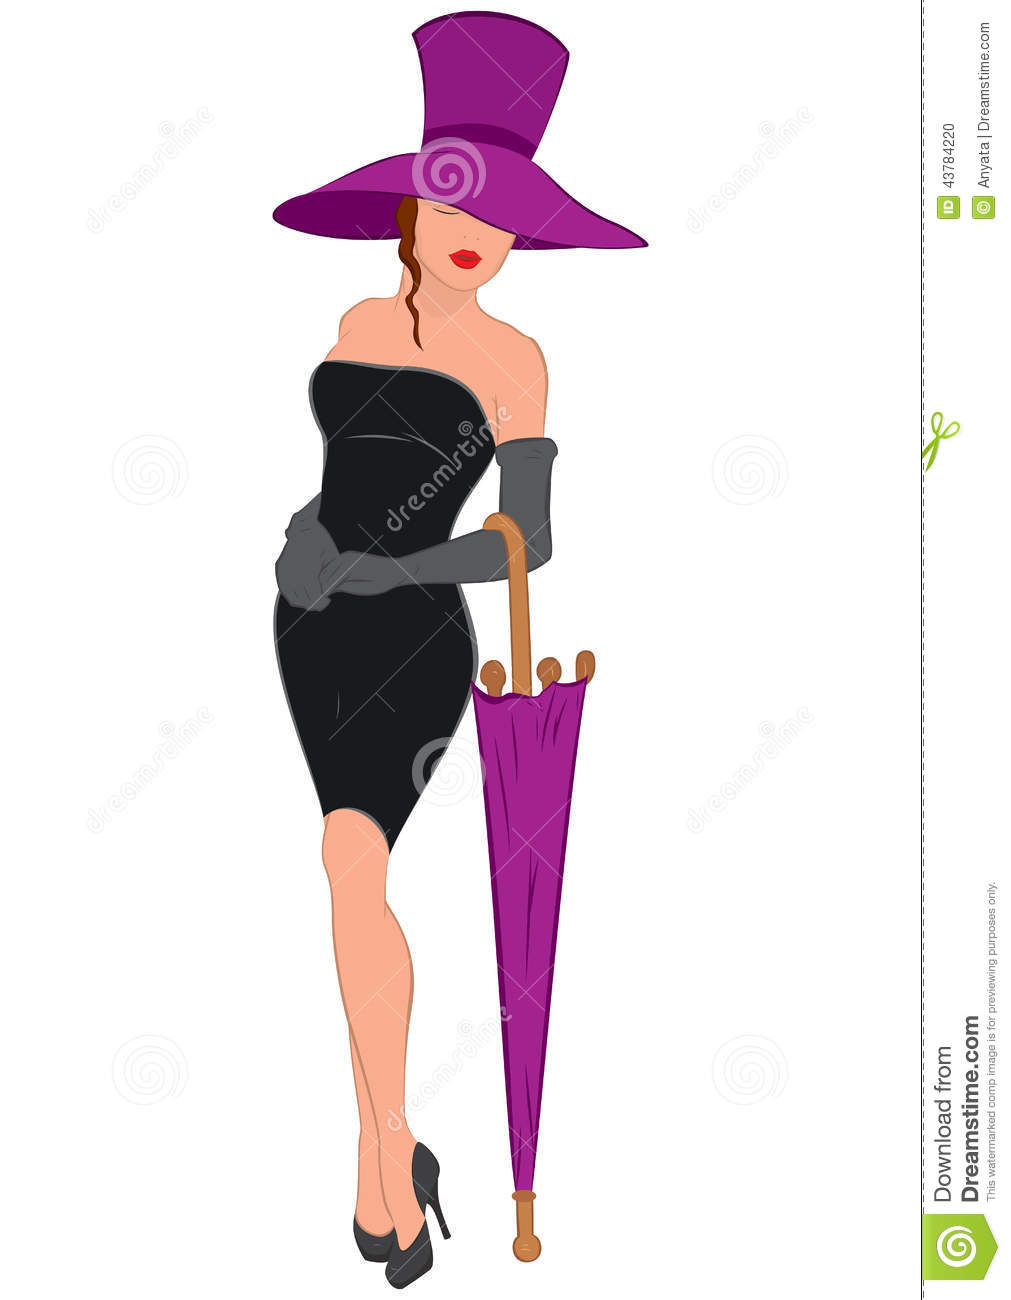 Black dress cartoon - Cartoon